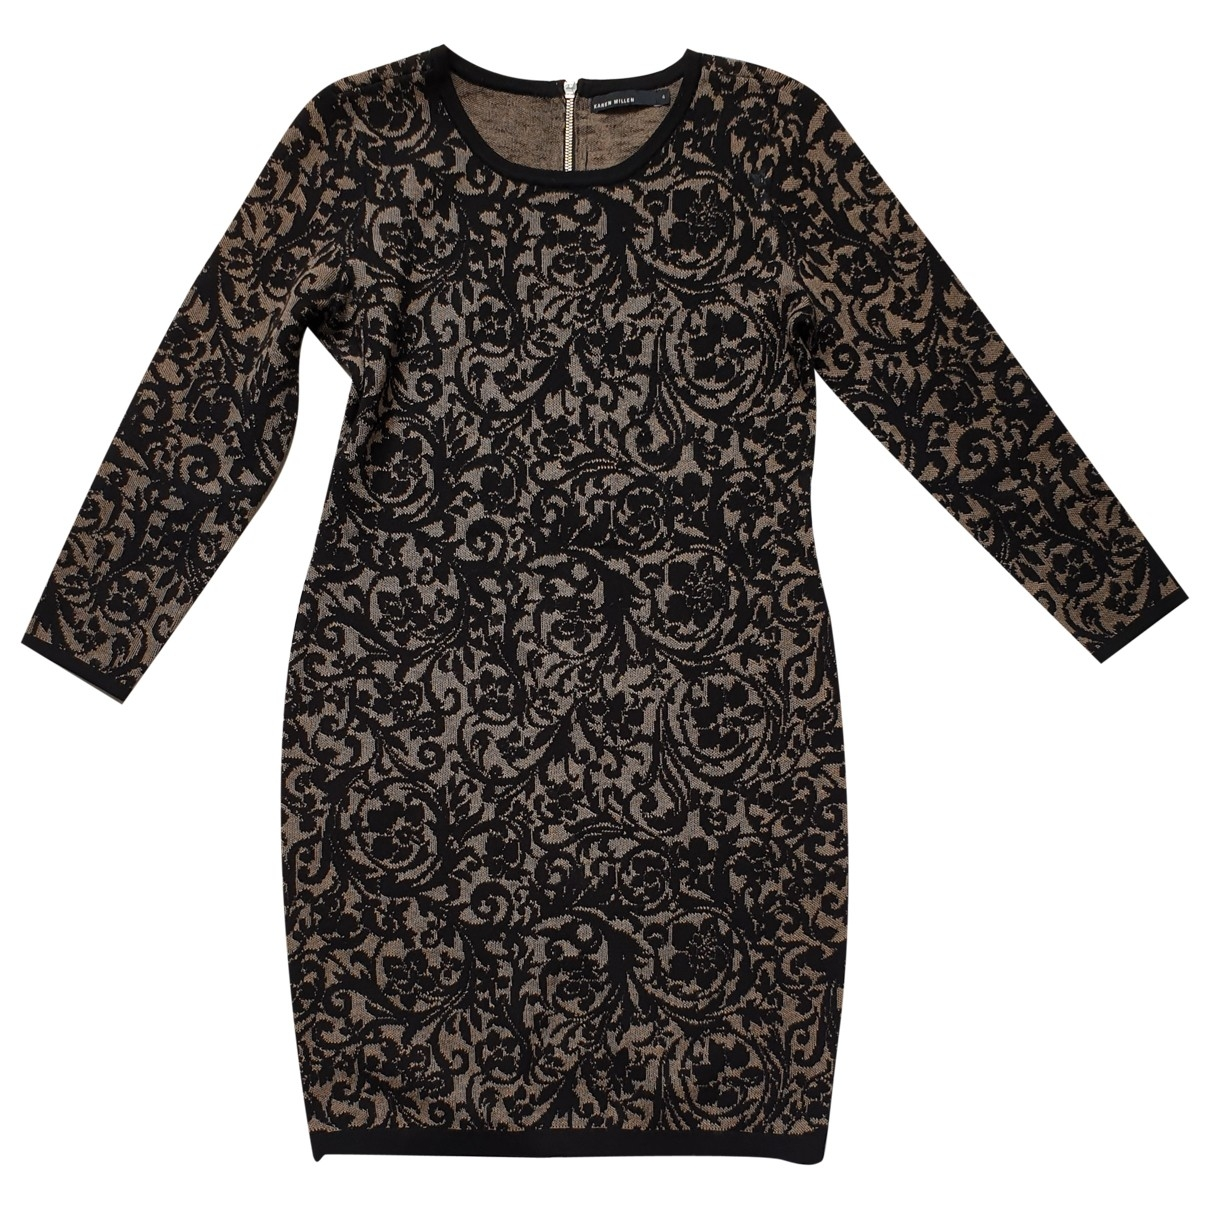 Karen Millen \N Black Wool dress for Women 4 0-5